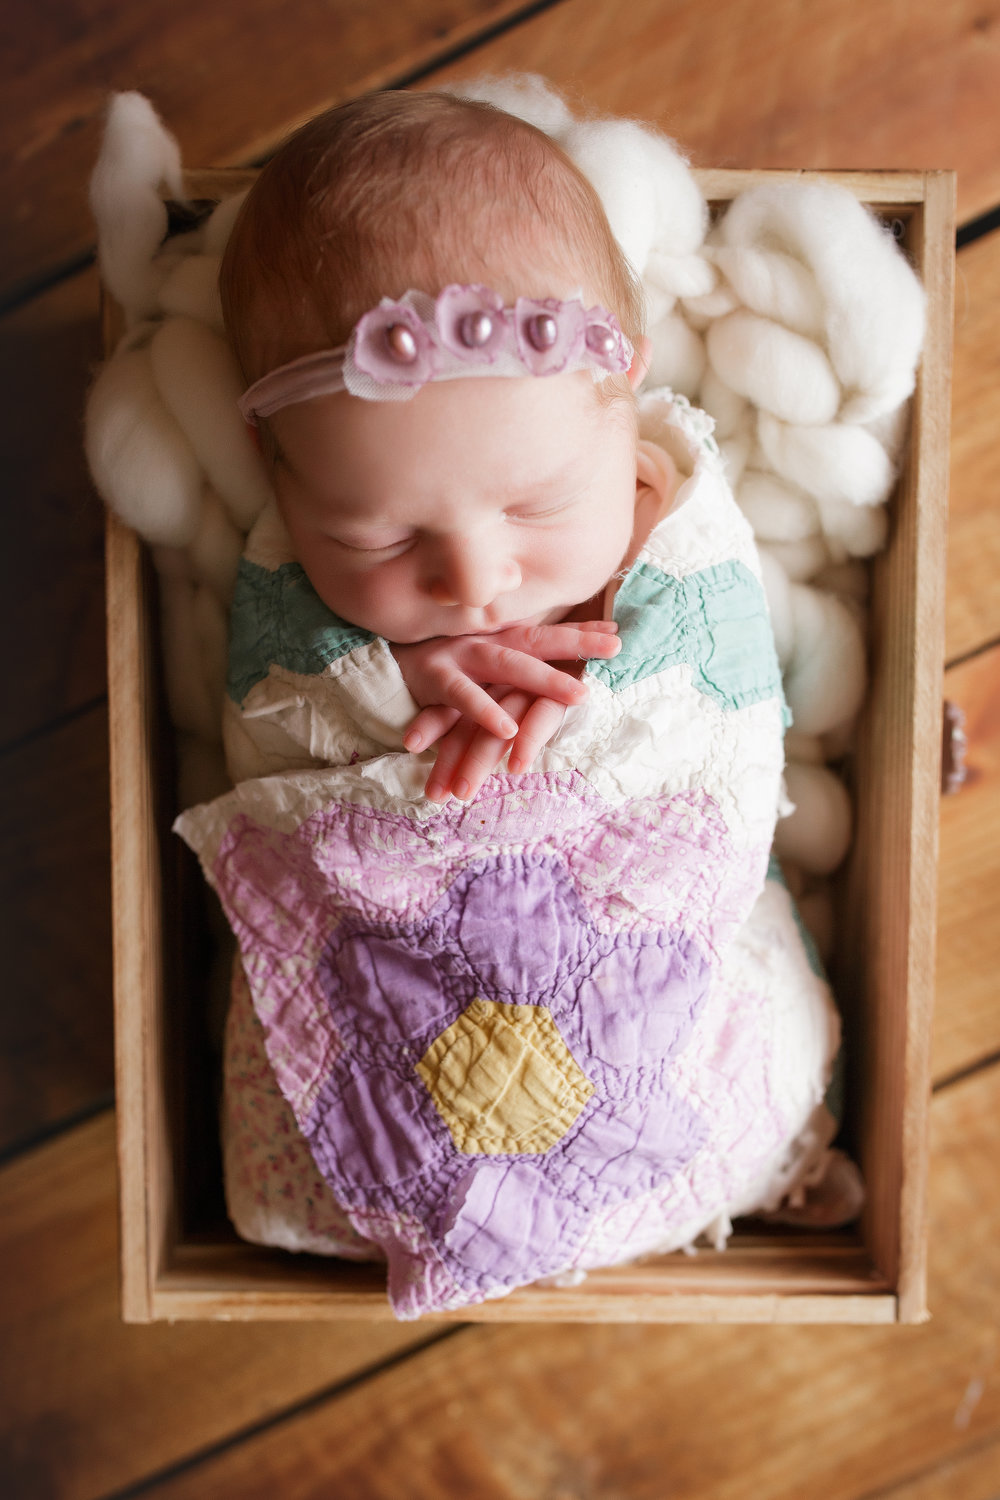 VioletNewbornSession_138.JPG